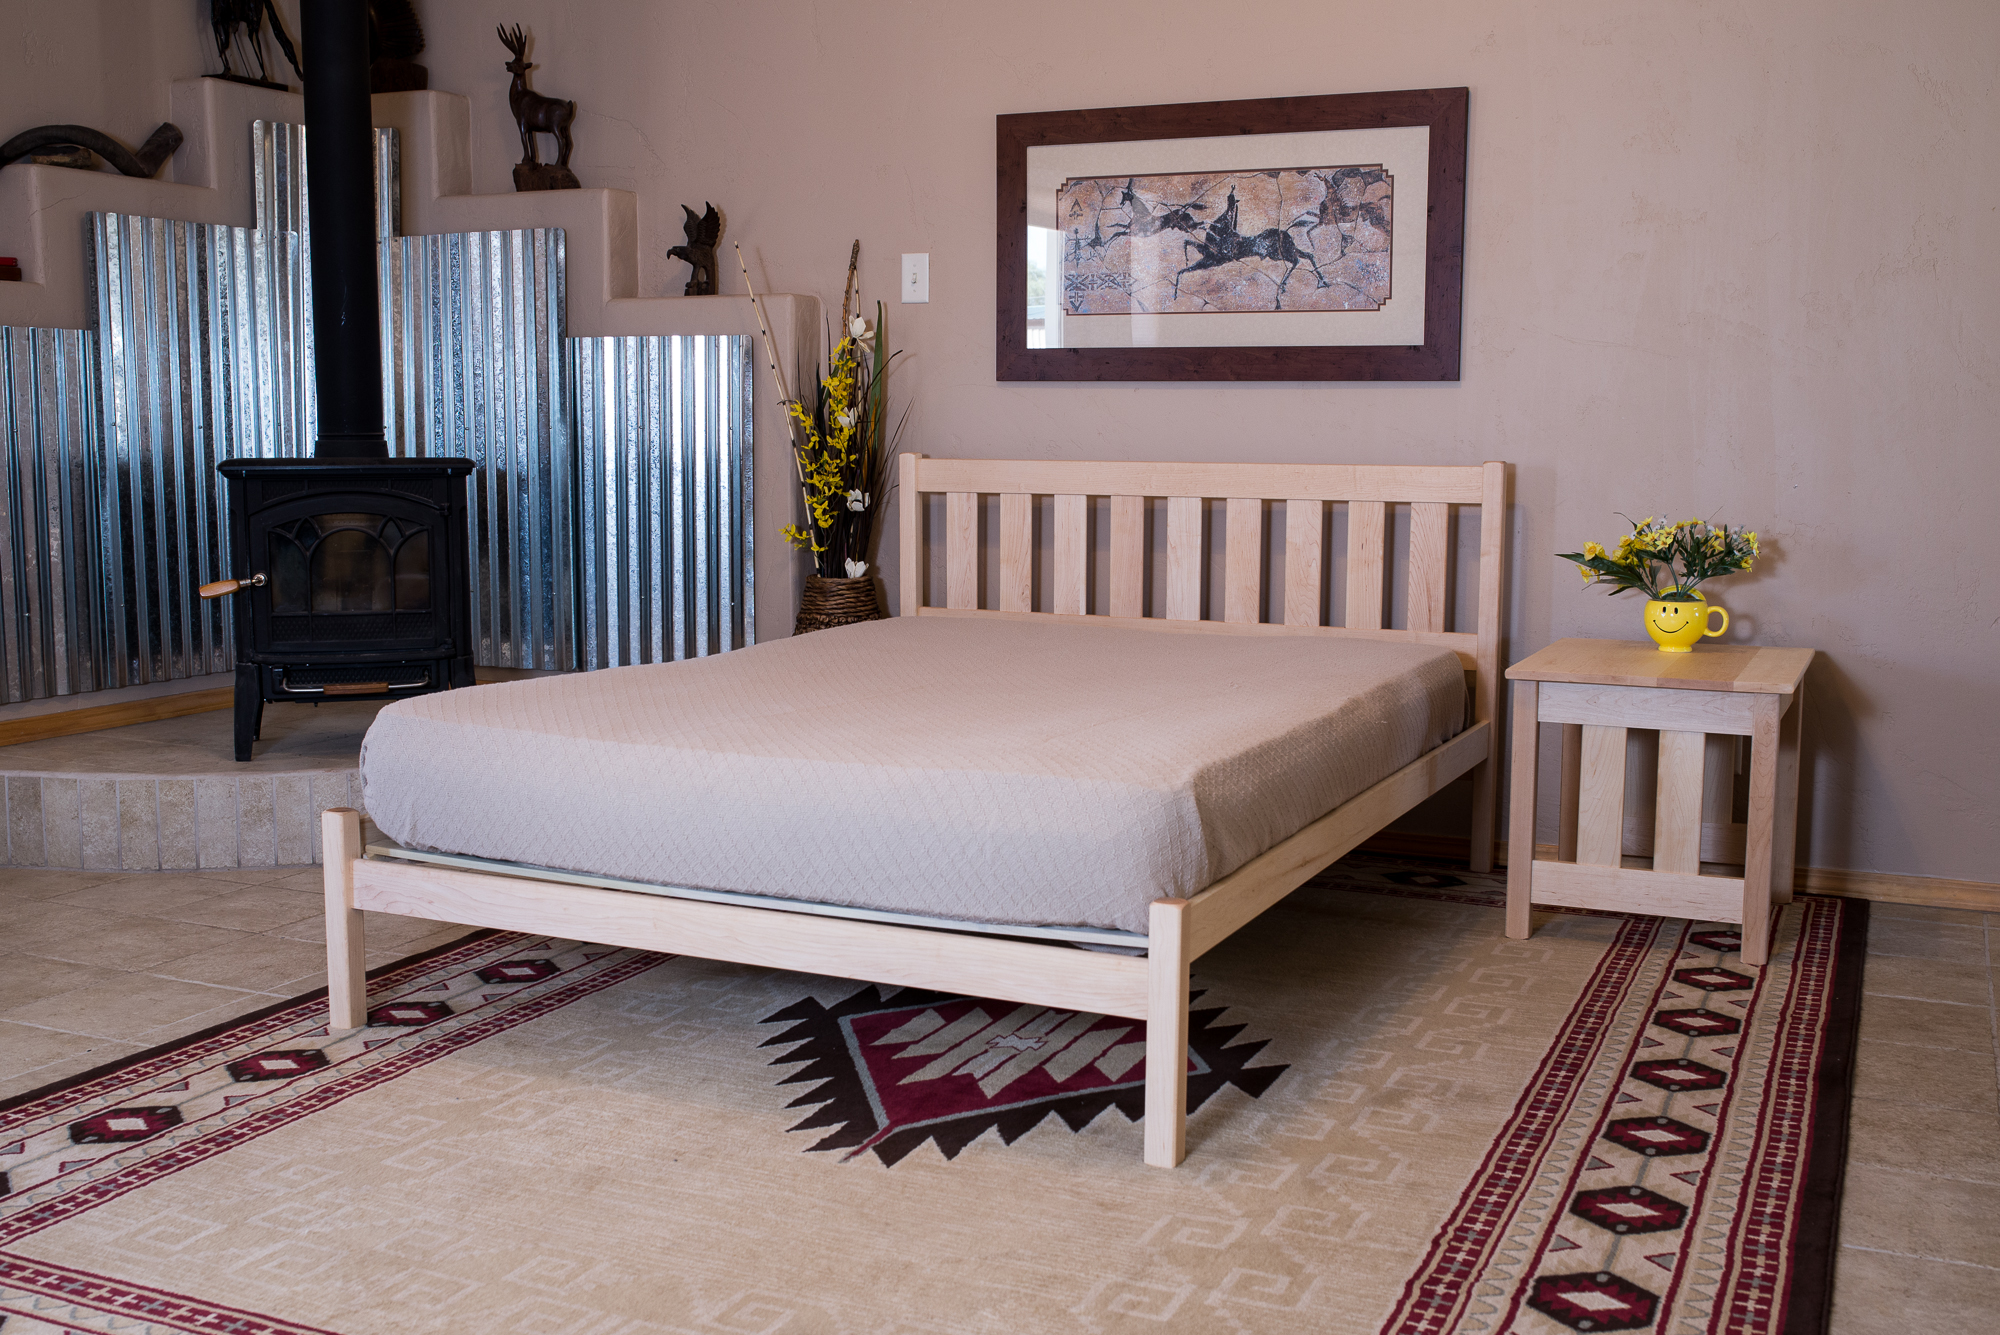 Mission Bed Table with Mission Bed